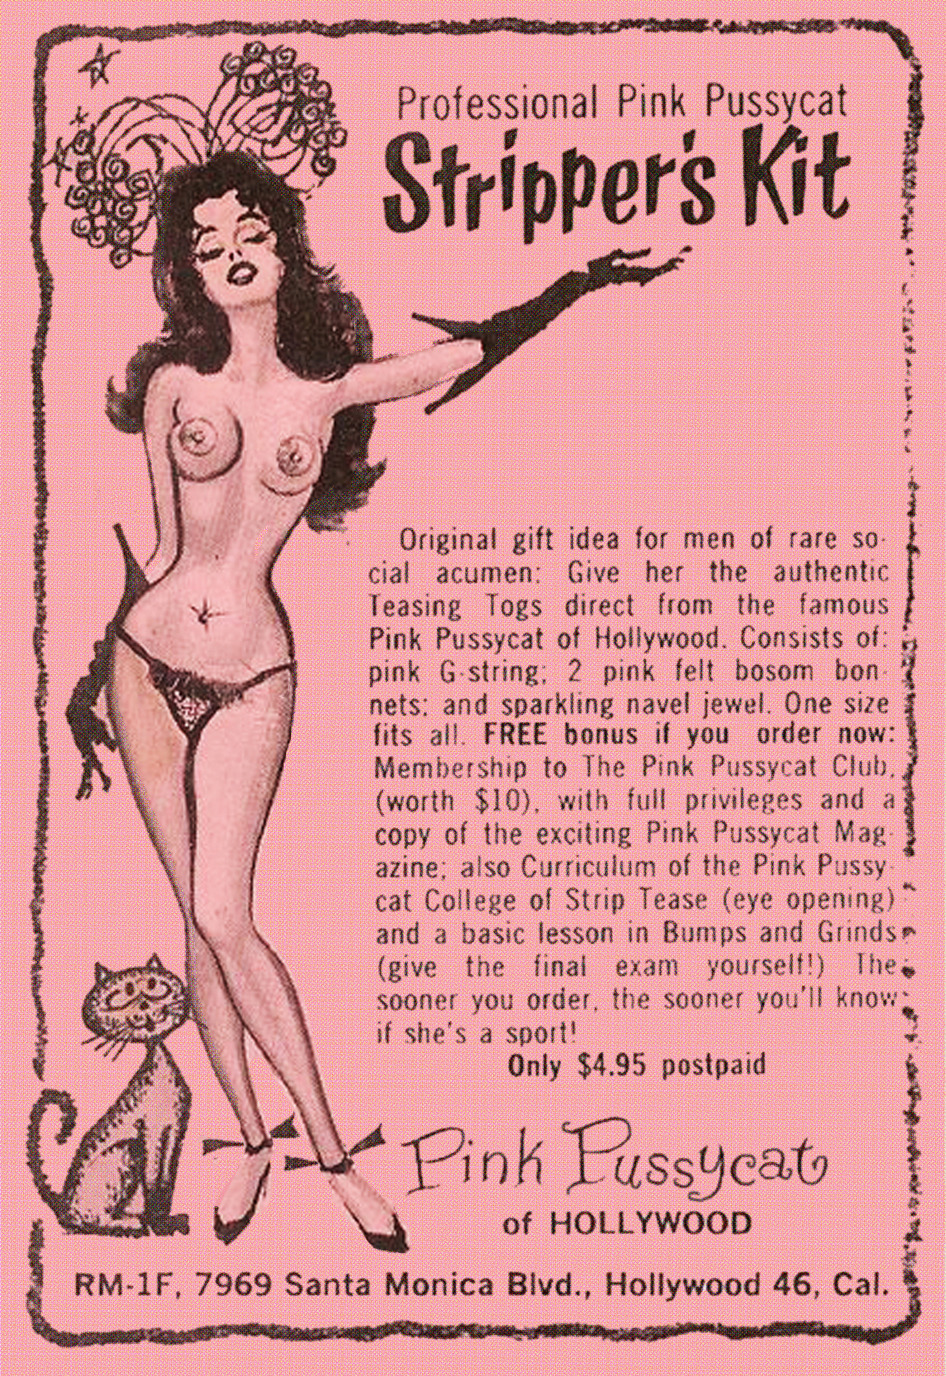 Pink Pussycat Stripper's Kit Available as a T-Shirt Design from $11.45 US http://vulturegraffix.onlineshirtstores.com